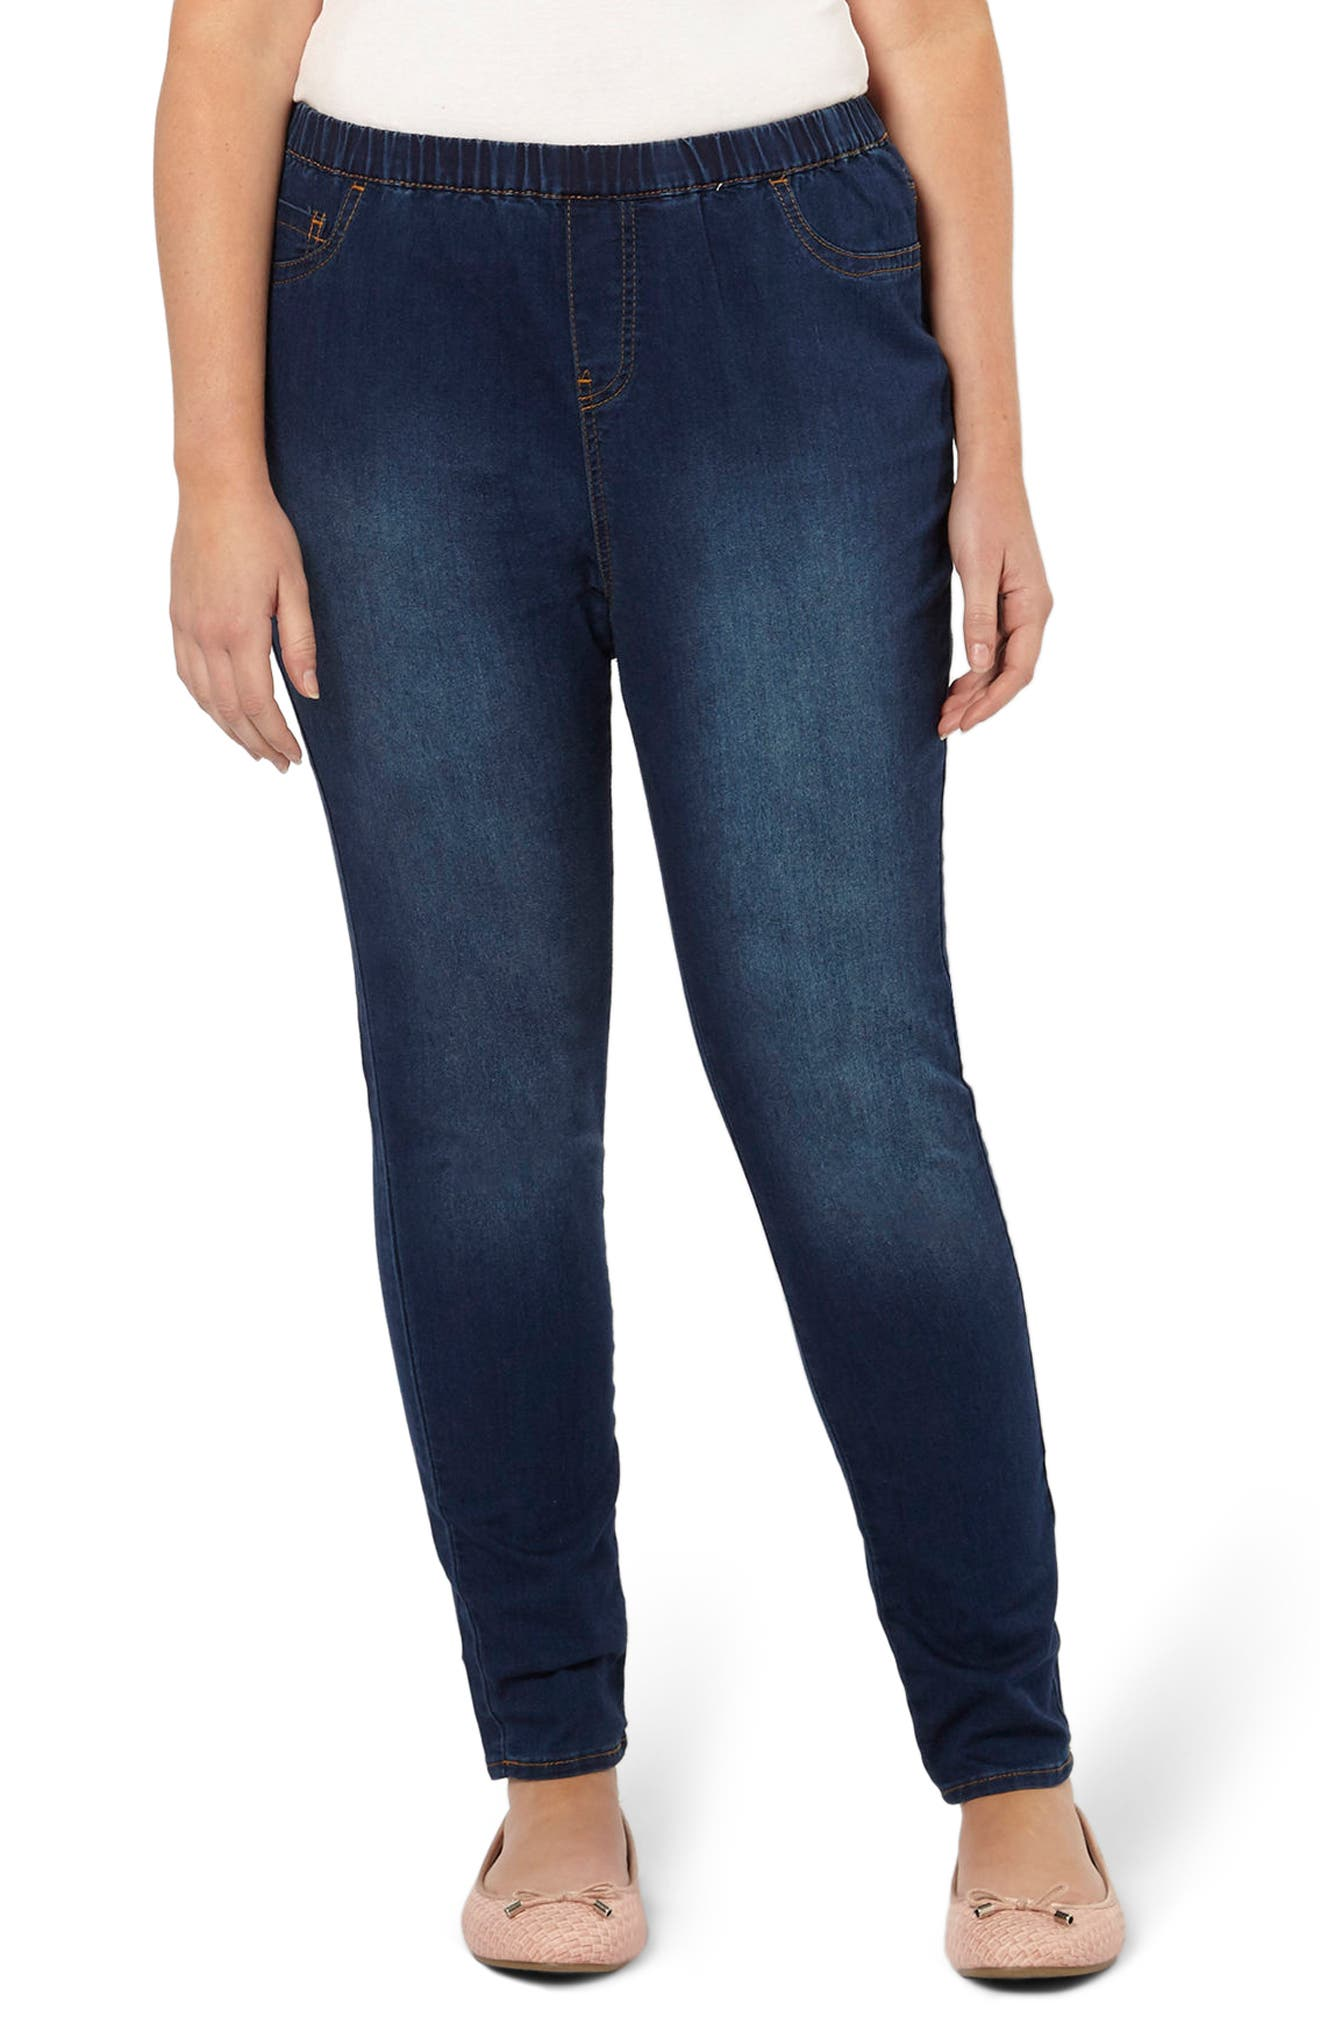 Main Image - Evans Denim Leggings (Mid Wash) (Plus Size)